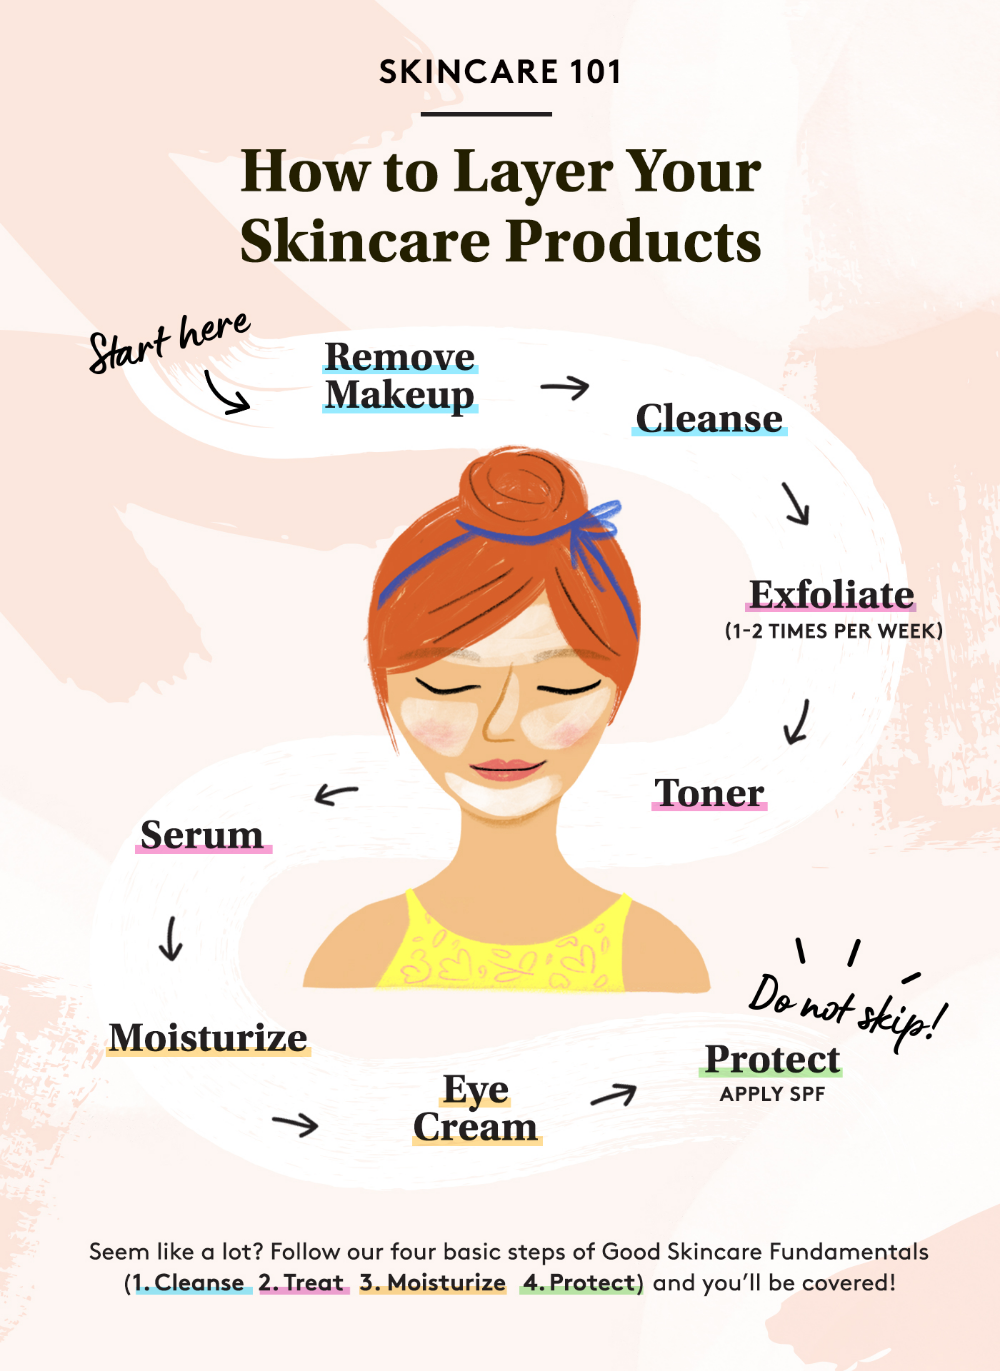 Are You Using Your Skincare Products in the Right Order